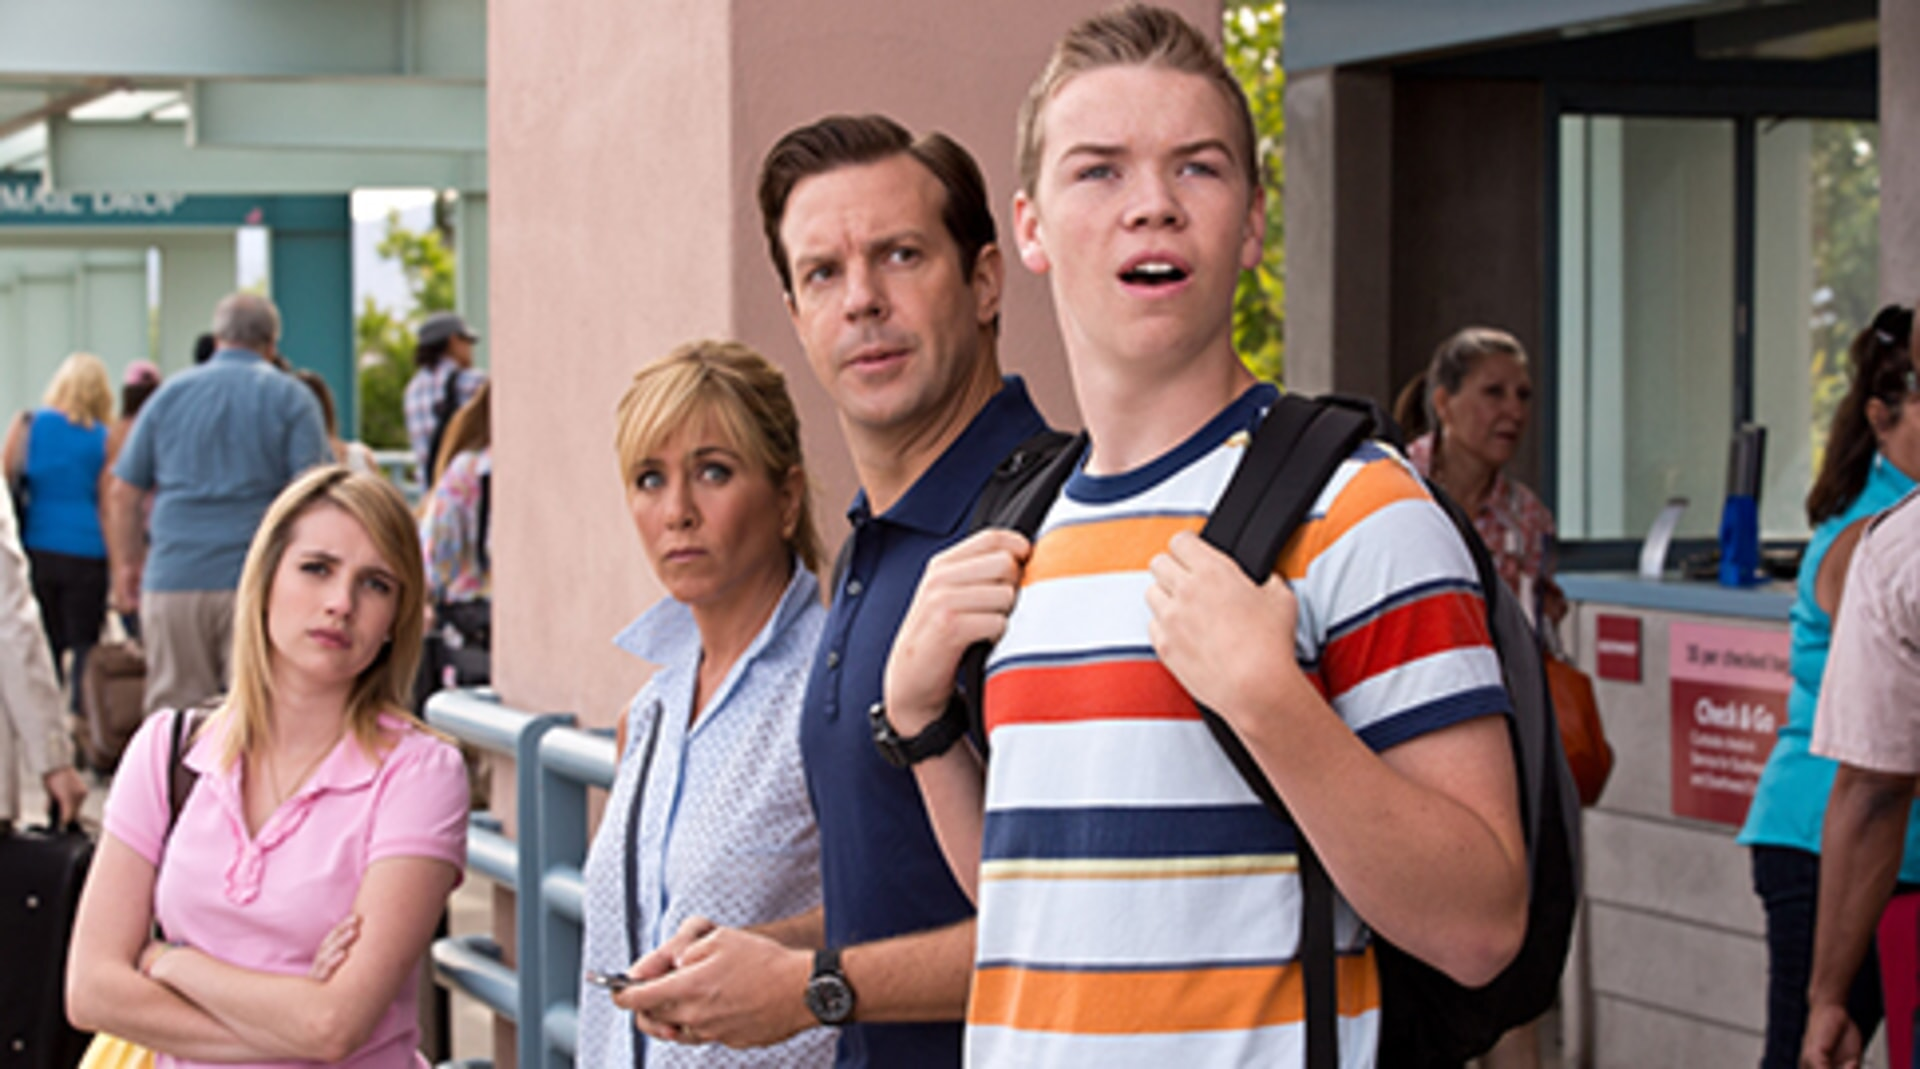 We're the Millers - Image 18